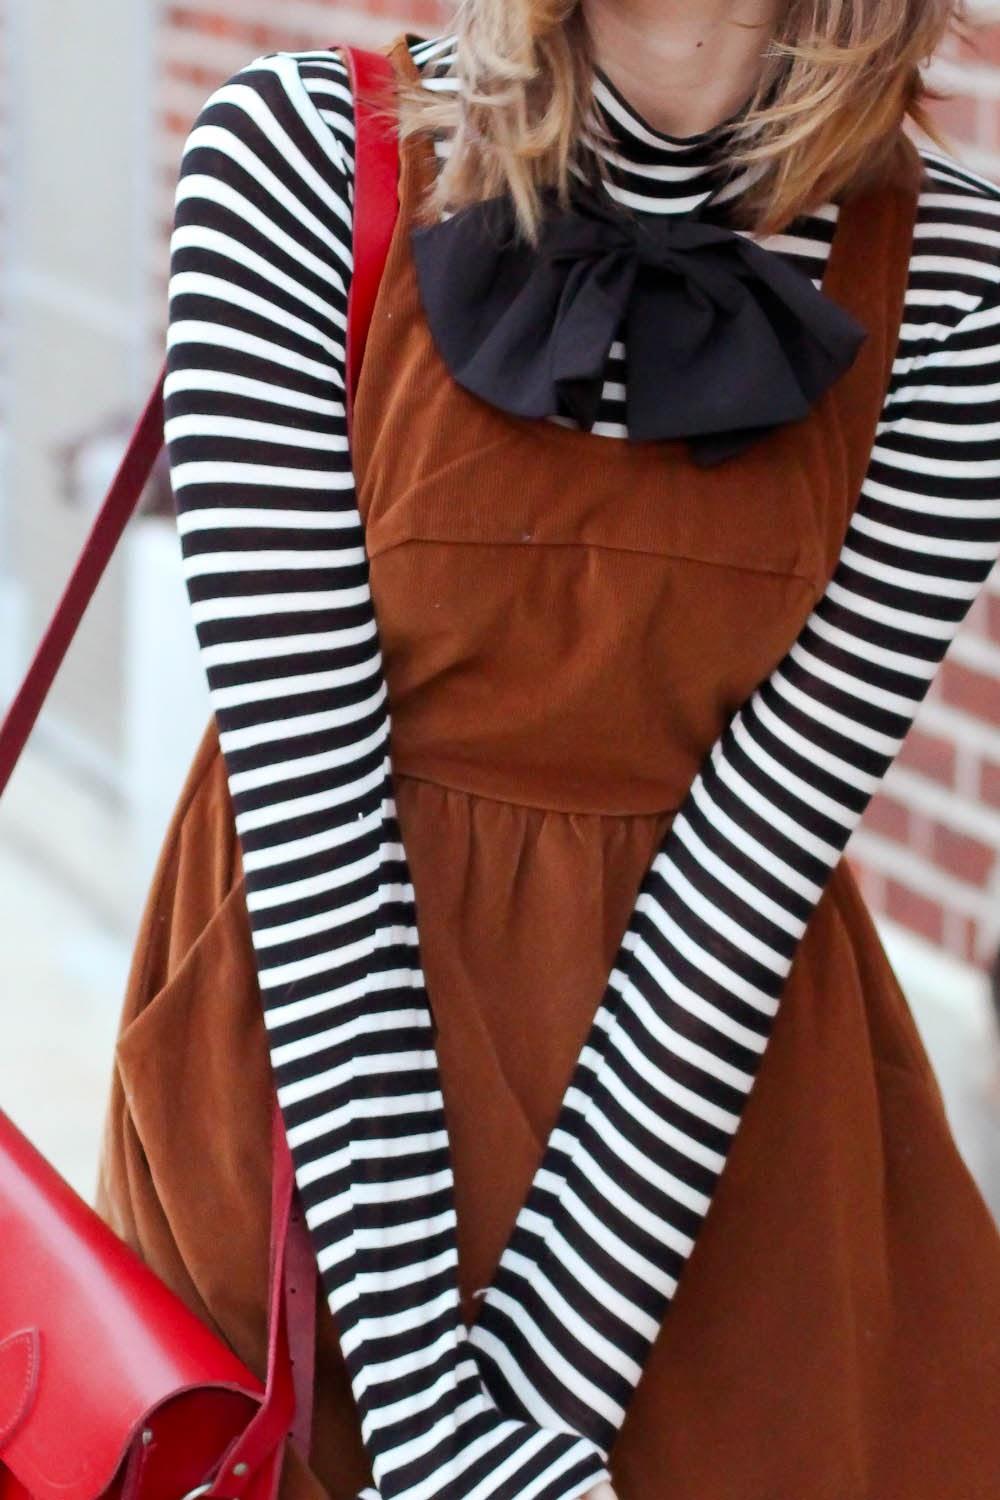 asos bow, lulu's corduroy ladakh dress, striped forever21 turtleneck, nyc vintage blogger, vintage blogger, nyc fashion blog